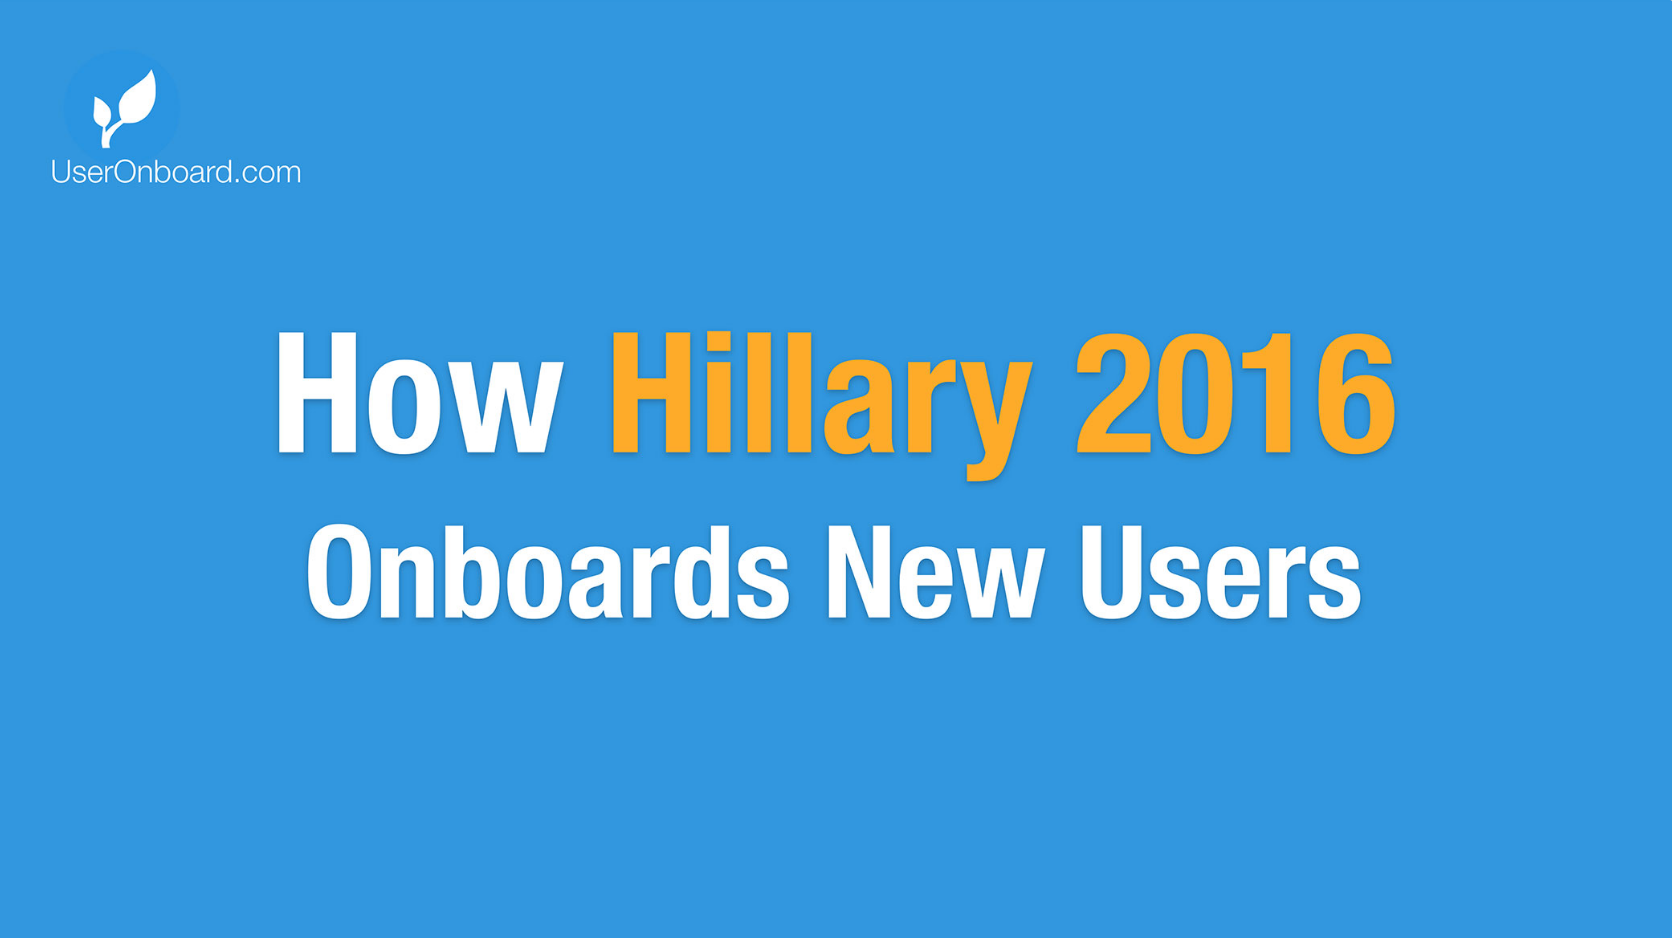 Onboarding Analysis Shows How Political Apps Can Incentivize Campaign Action